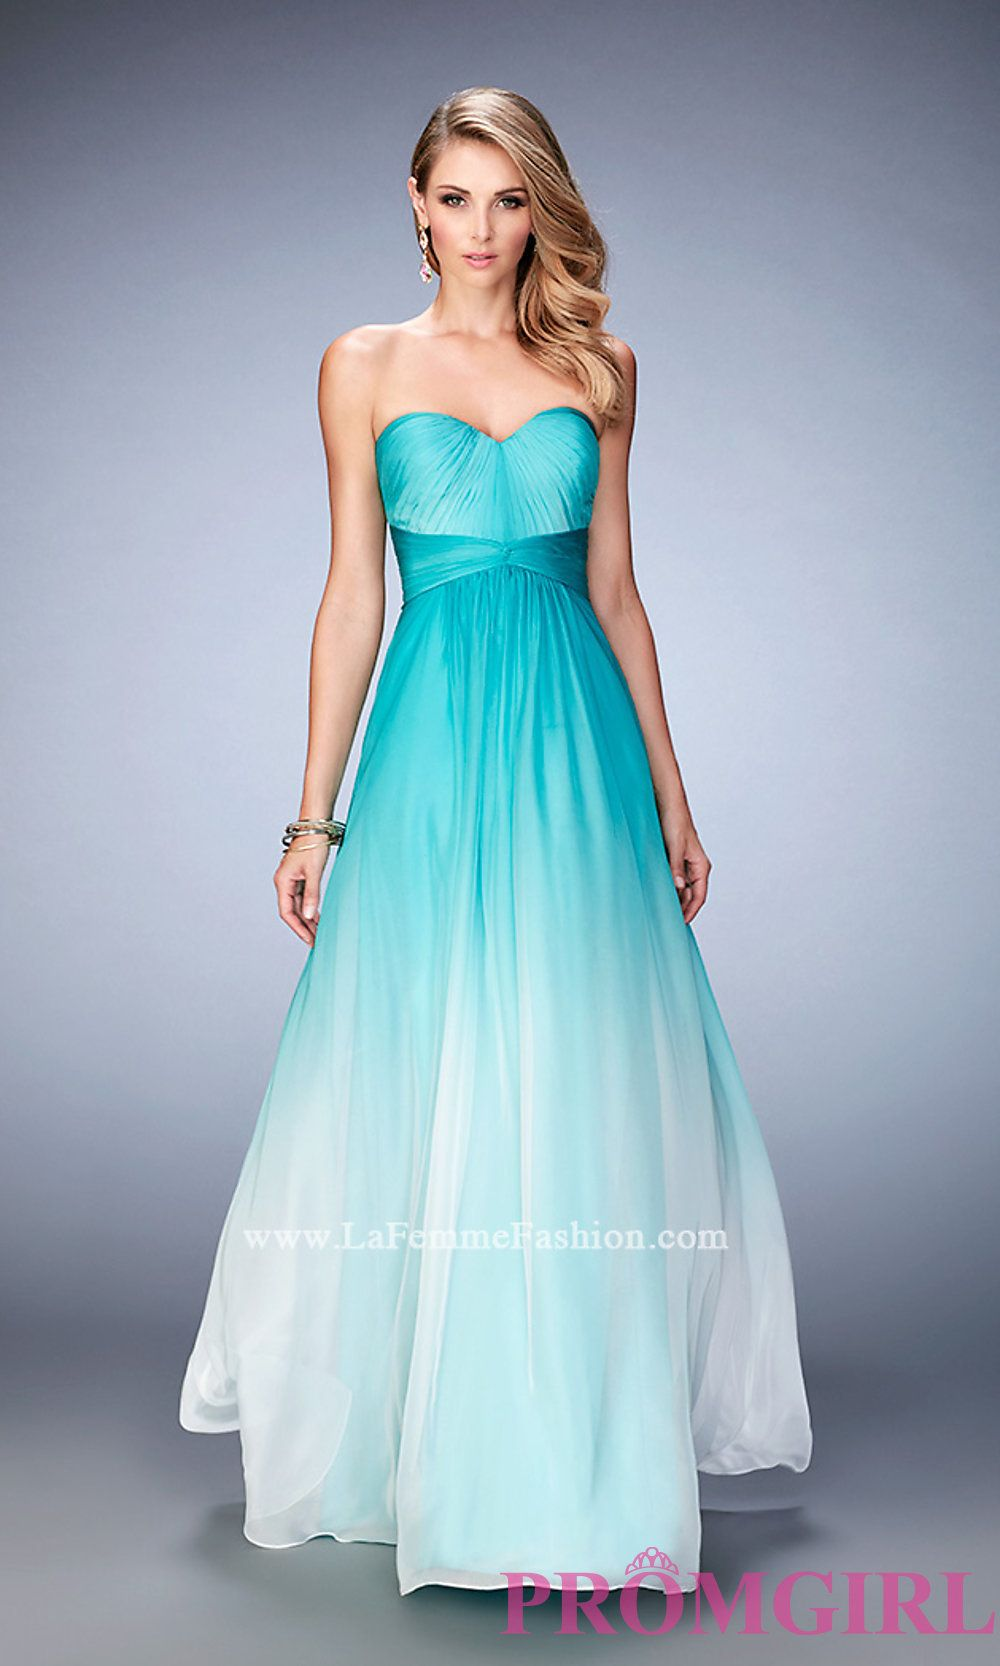 Empire Waist Long Ombre Strapless Prom Dress Style: LF-22880 | Prom ...